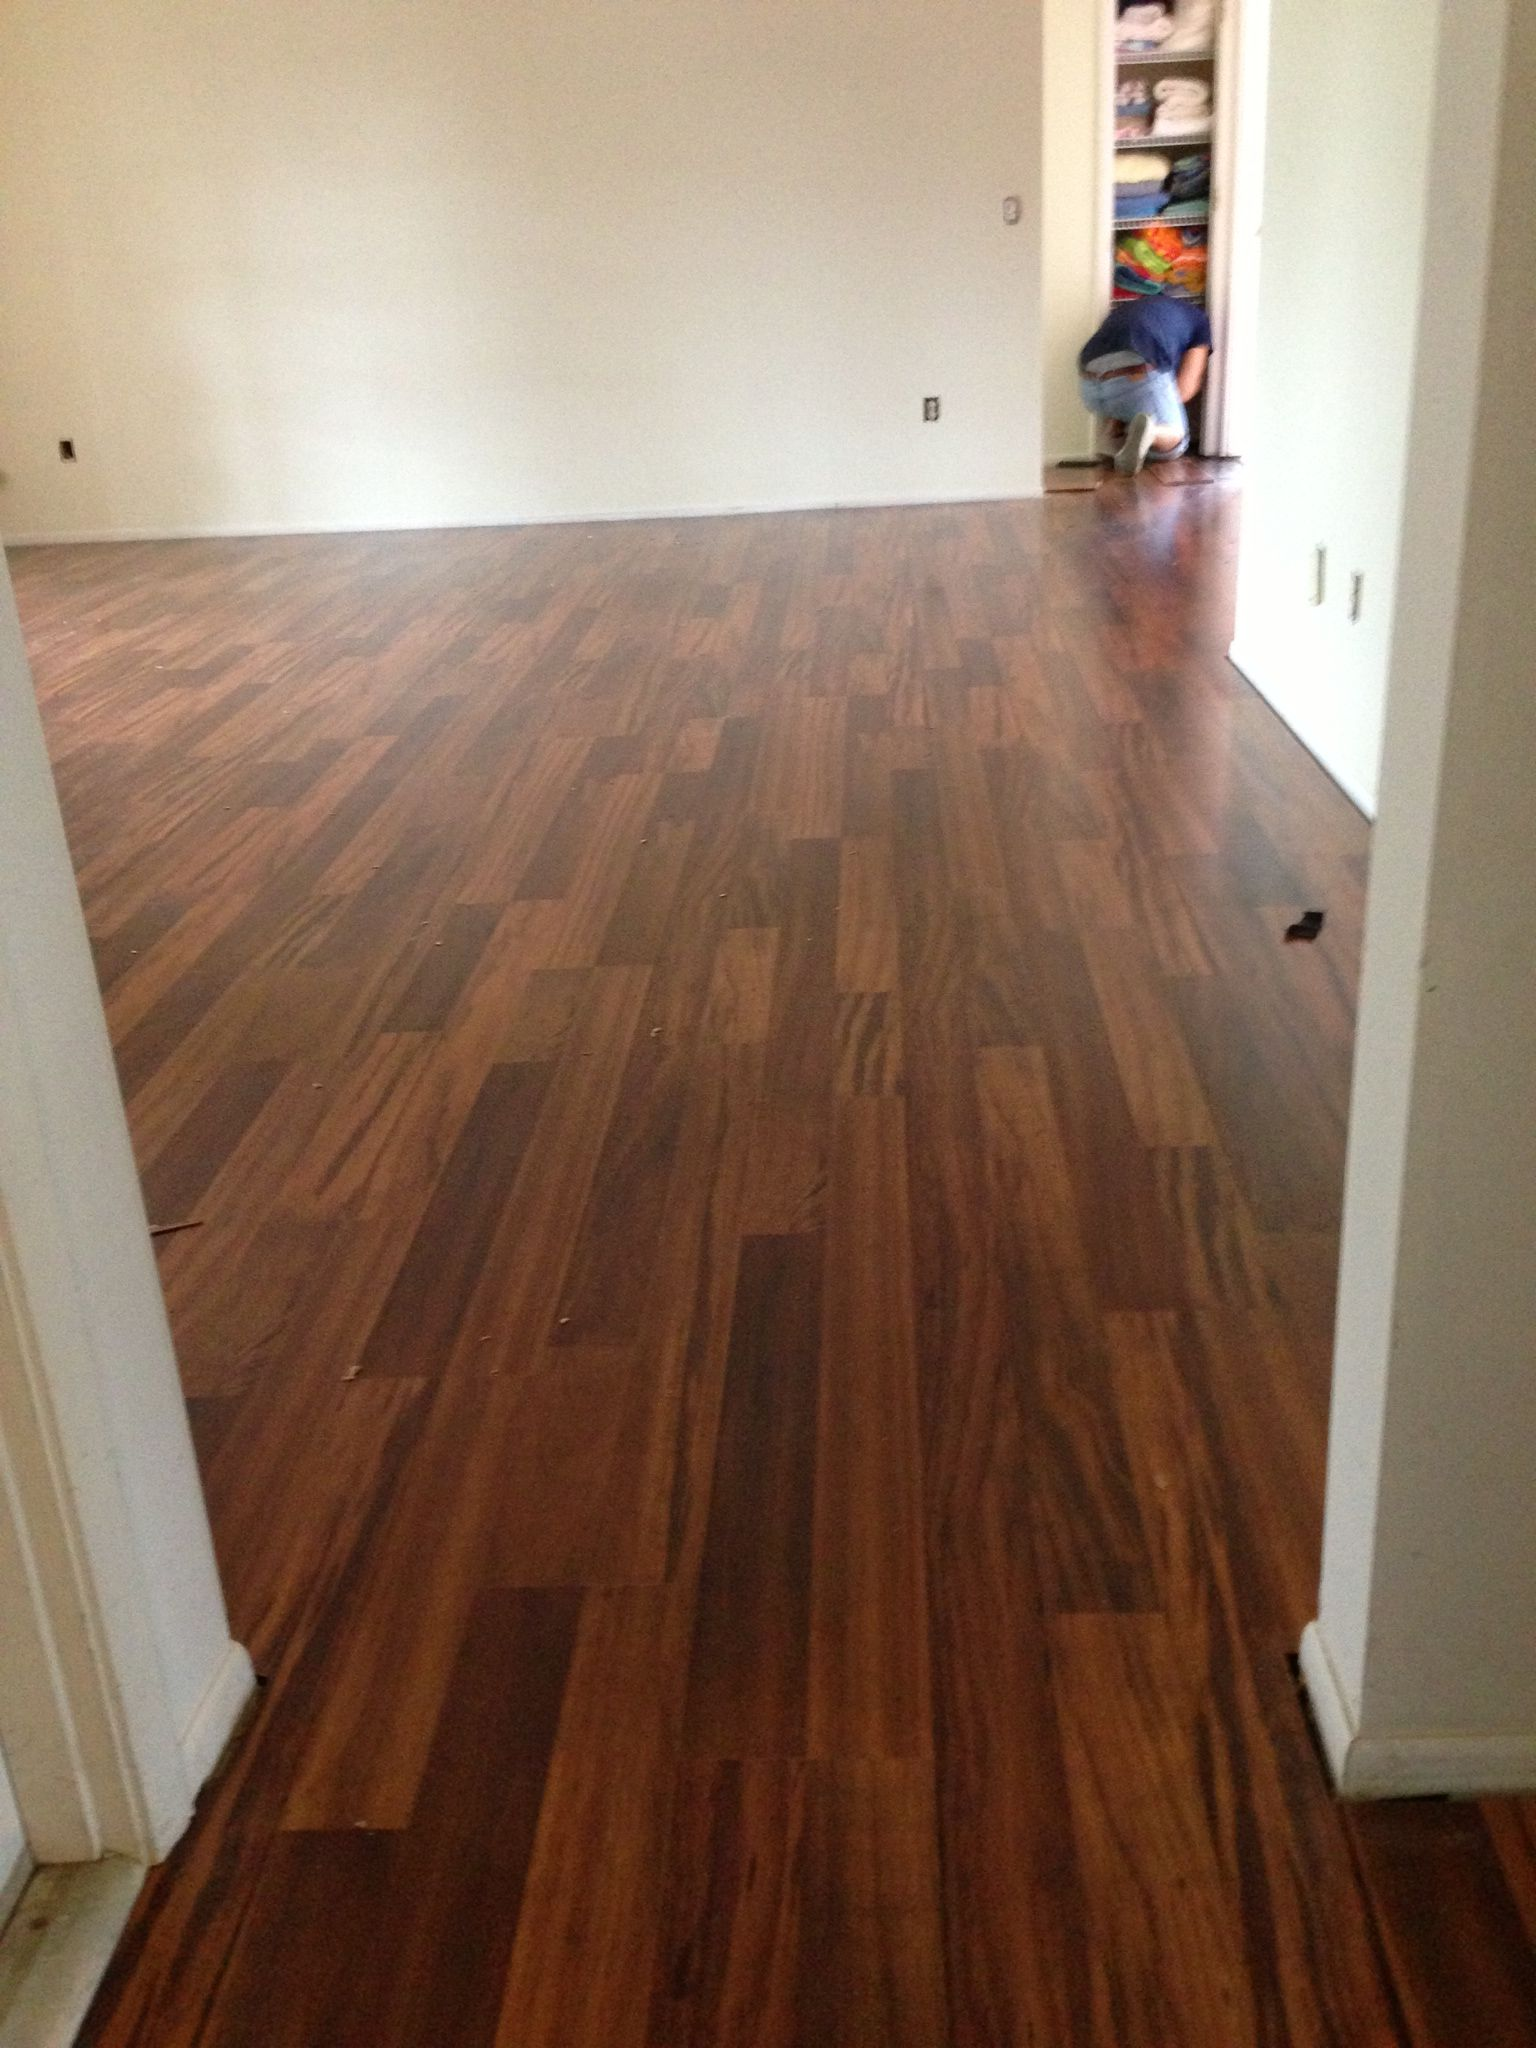 Calling Them The Best Floors Ever Allen Roth Tigerwood